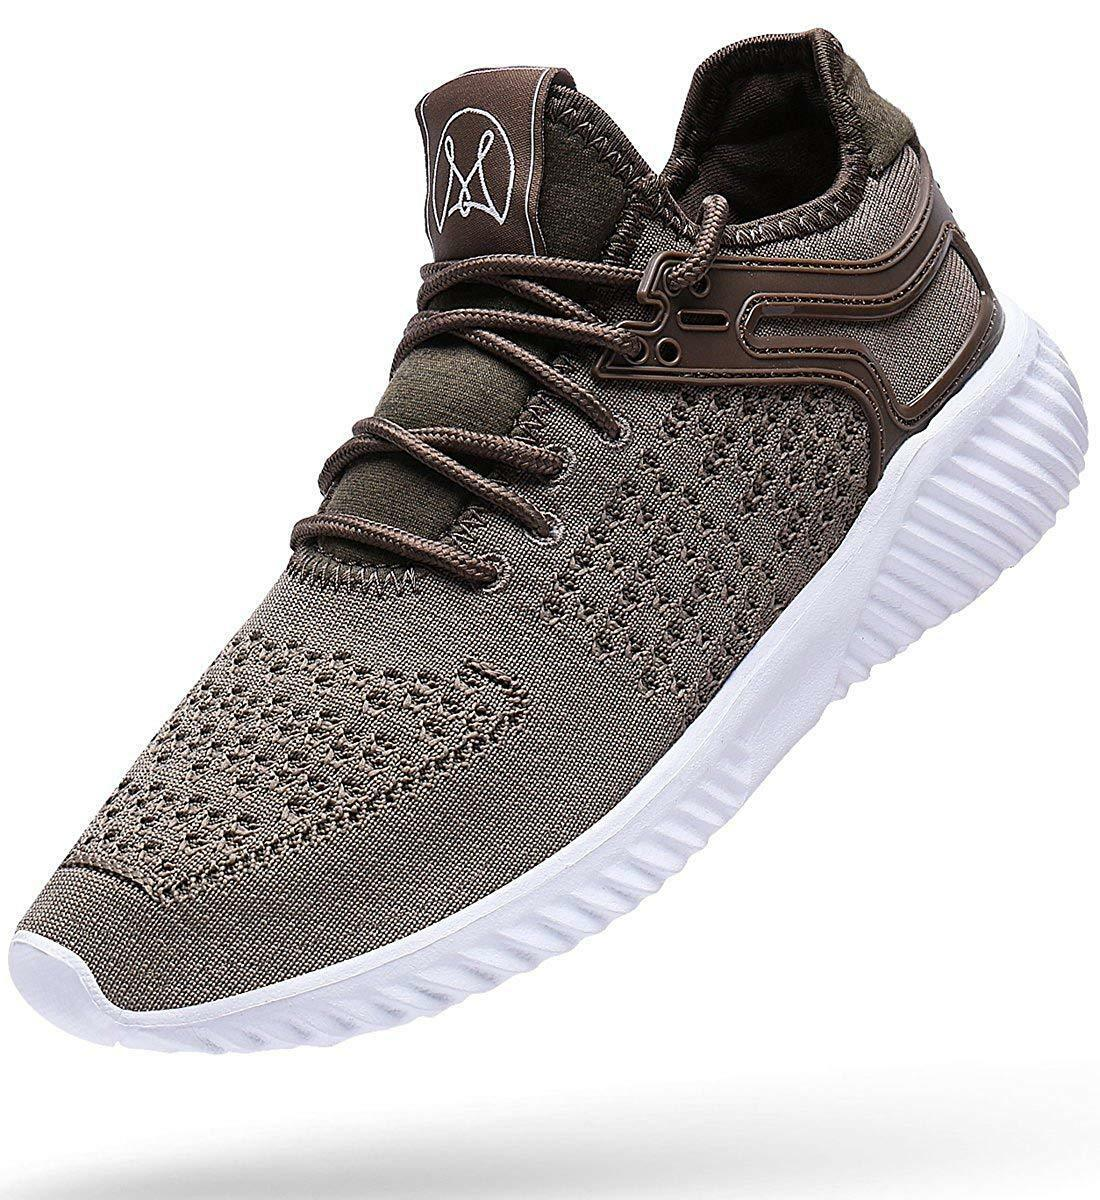 Wonesion Mens Walking shoes Mesh Lightweight Breathable Sneakers Sport Fitness